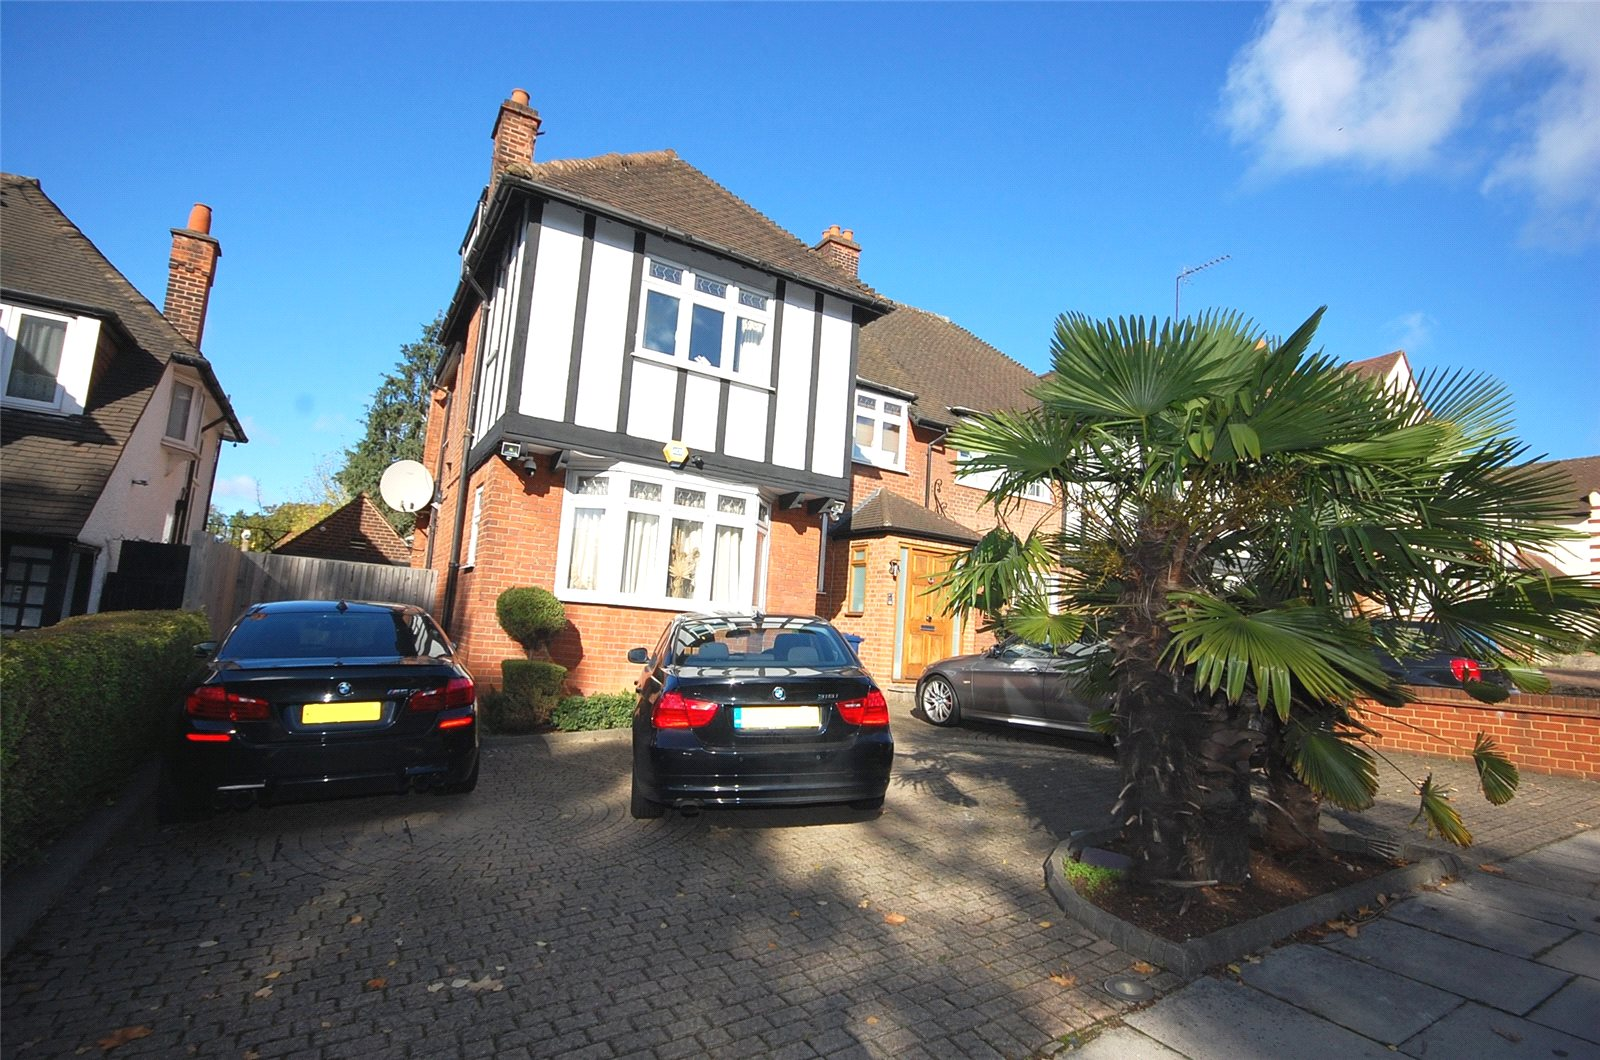 6 Bedrooms Semi Detached House for sale in Hendon Lane Finchley London N3